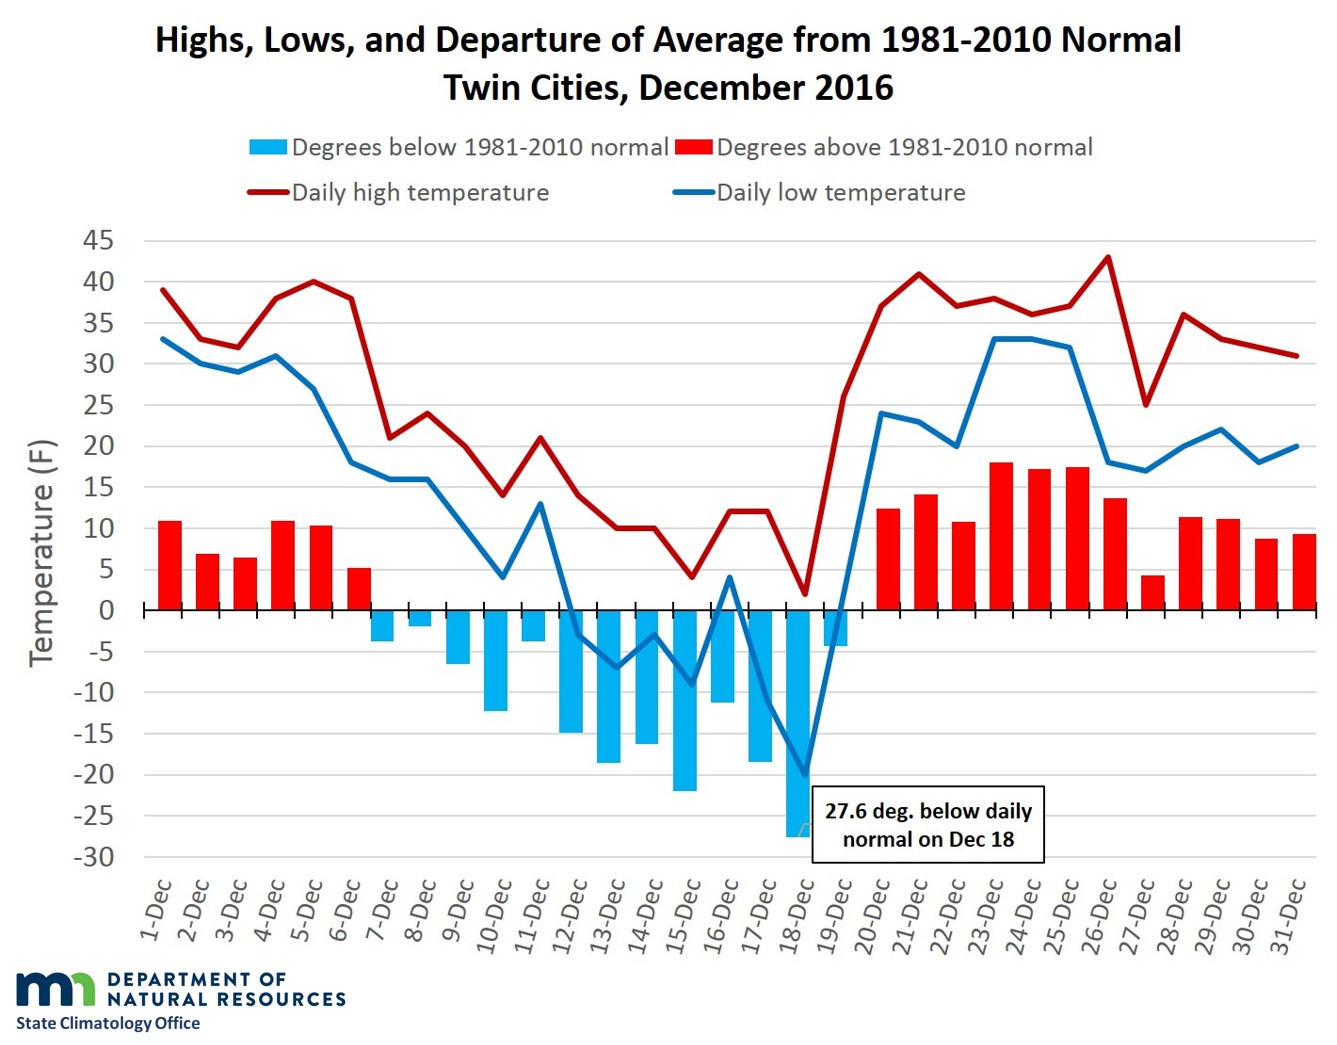 December 2016 daily temperatures and departures in the Twin Cities